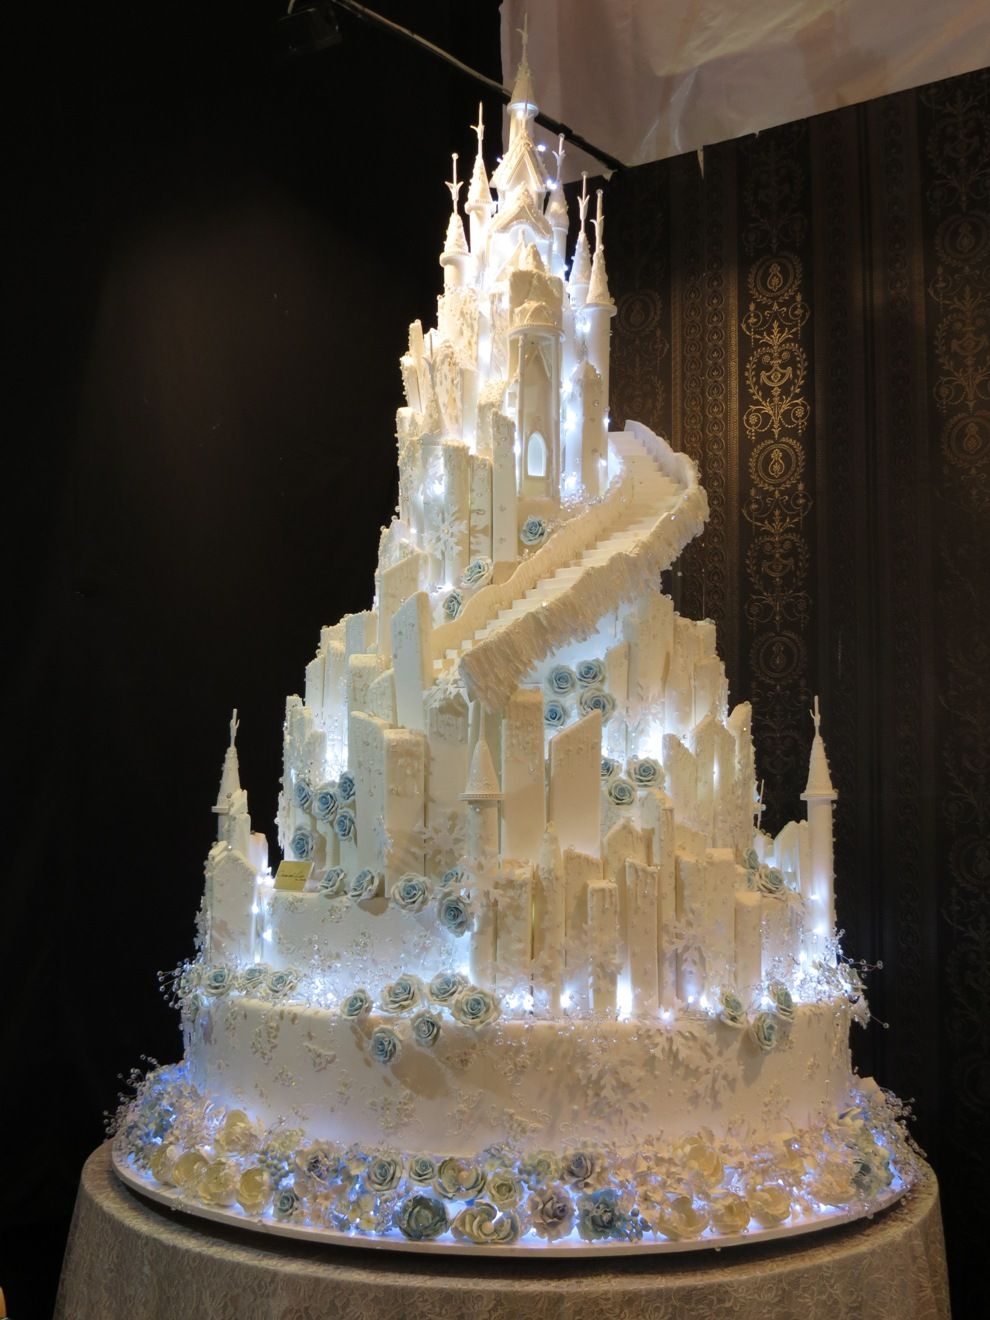 Pin by Mary Wantz on Magnificent Cakes.. | Extravagant wedding cakes, Wedding cakes, Cake